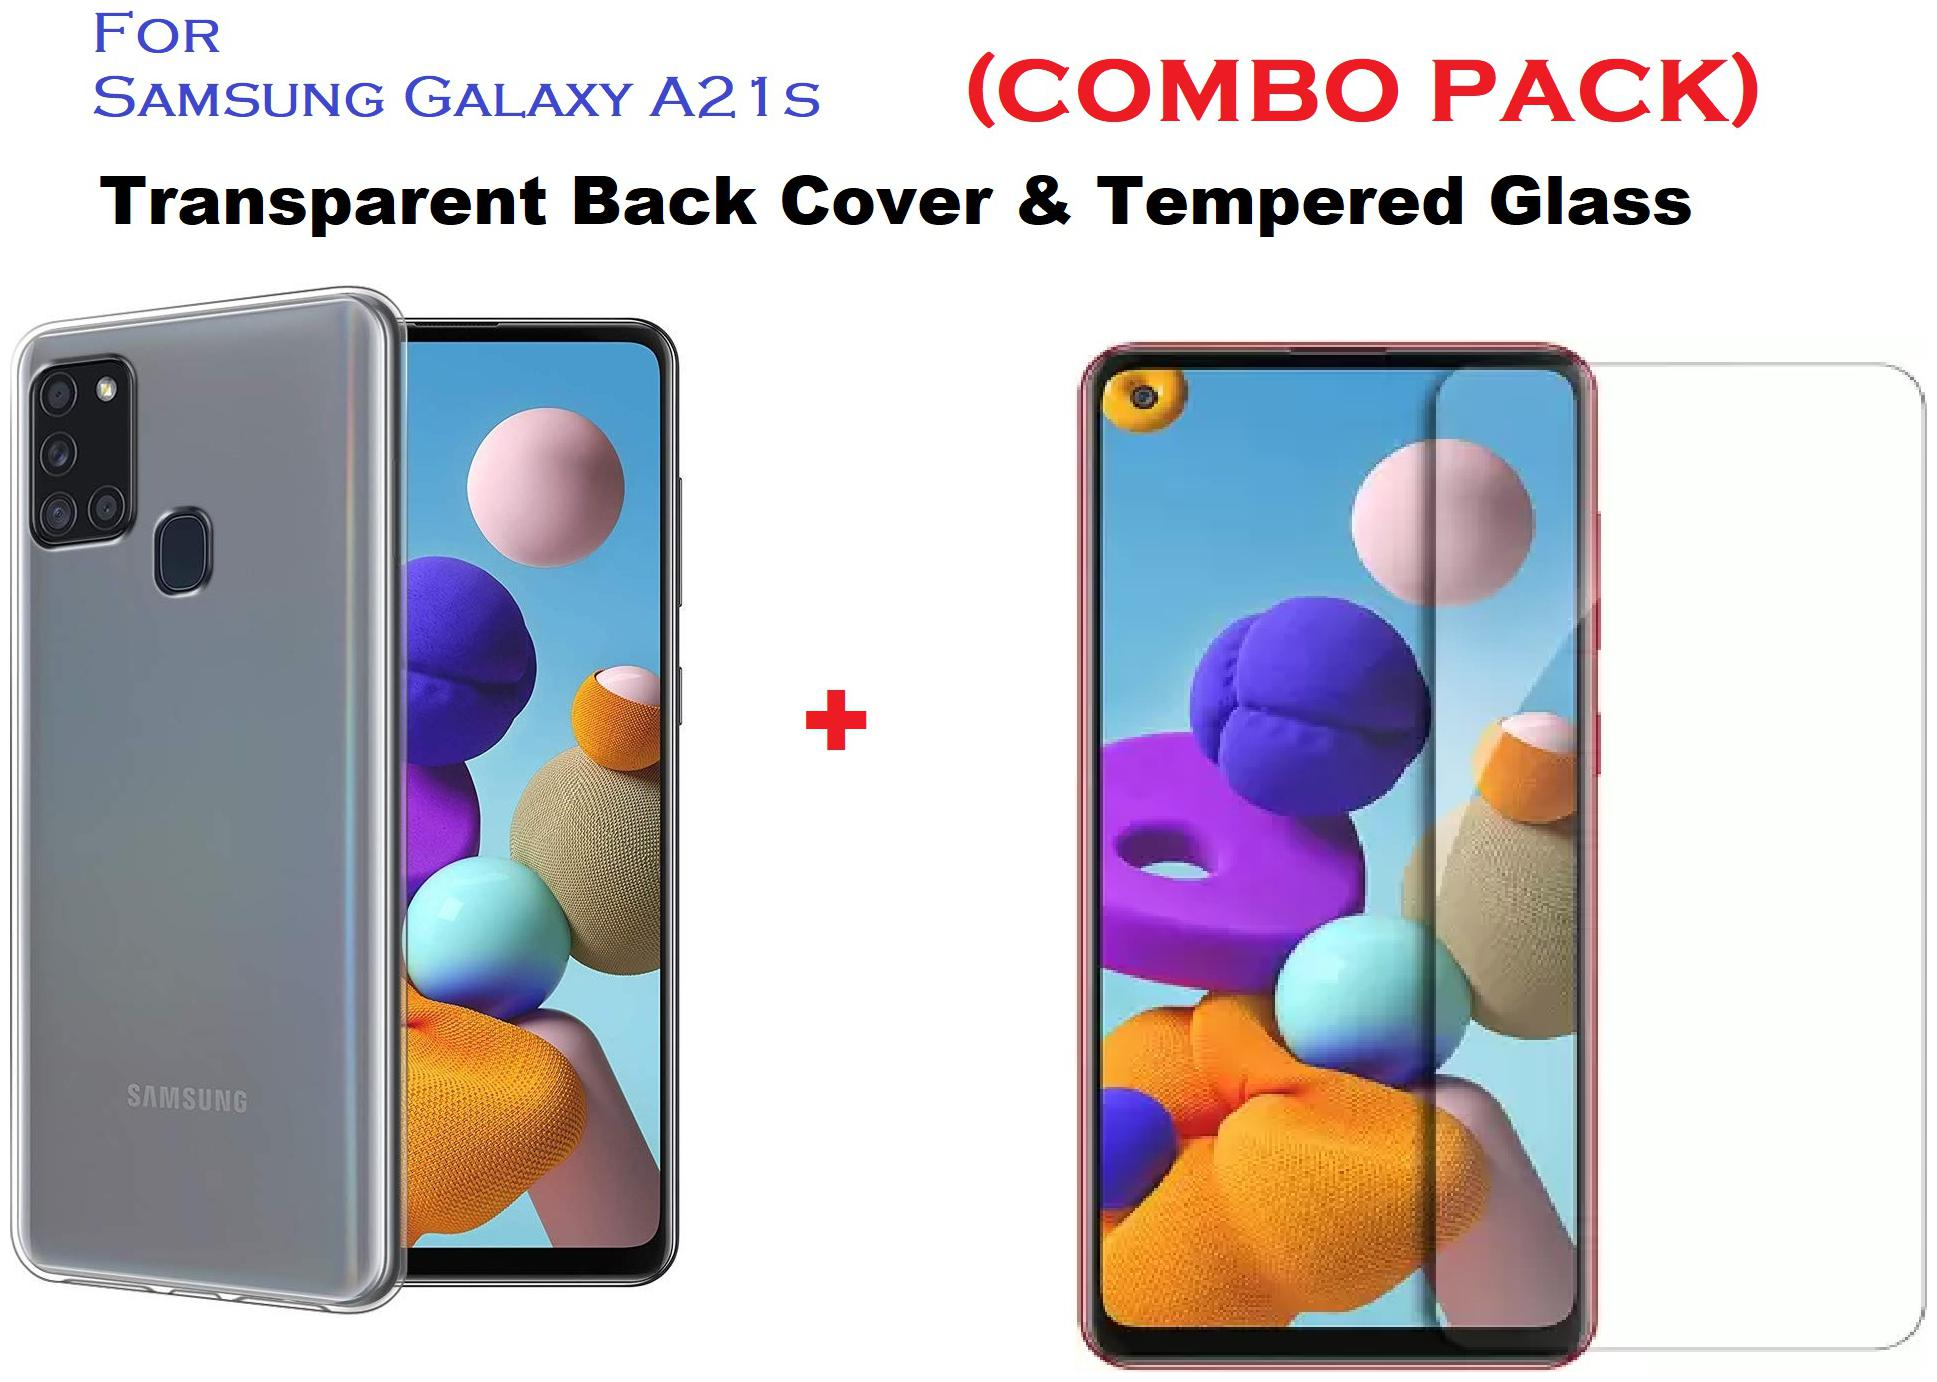 Samsung Galaxy A21s Tempered Glass And Transparent Back Cover (Combo Pack)